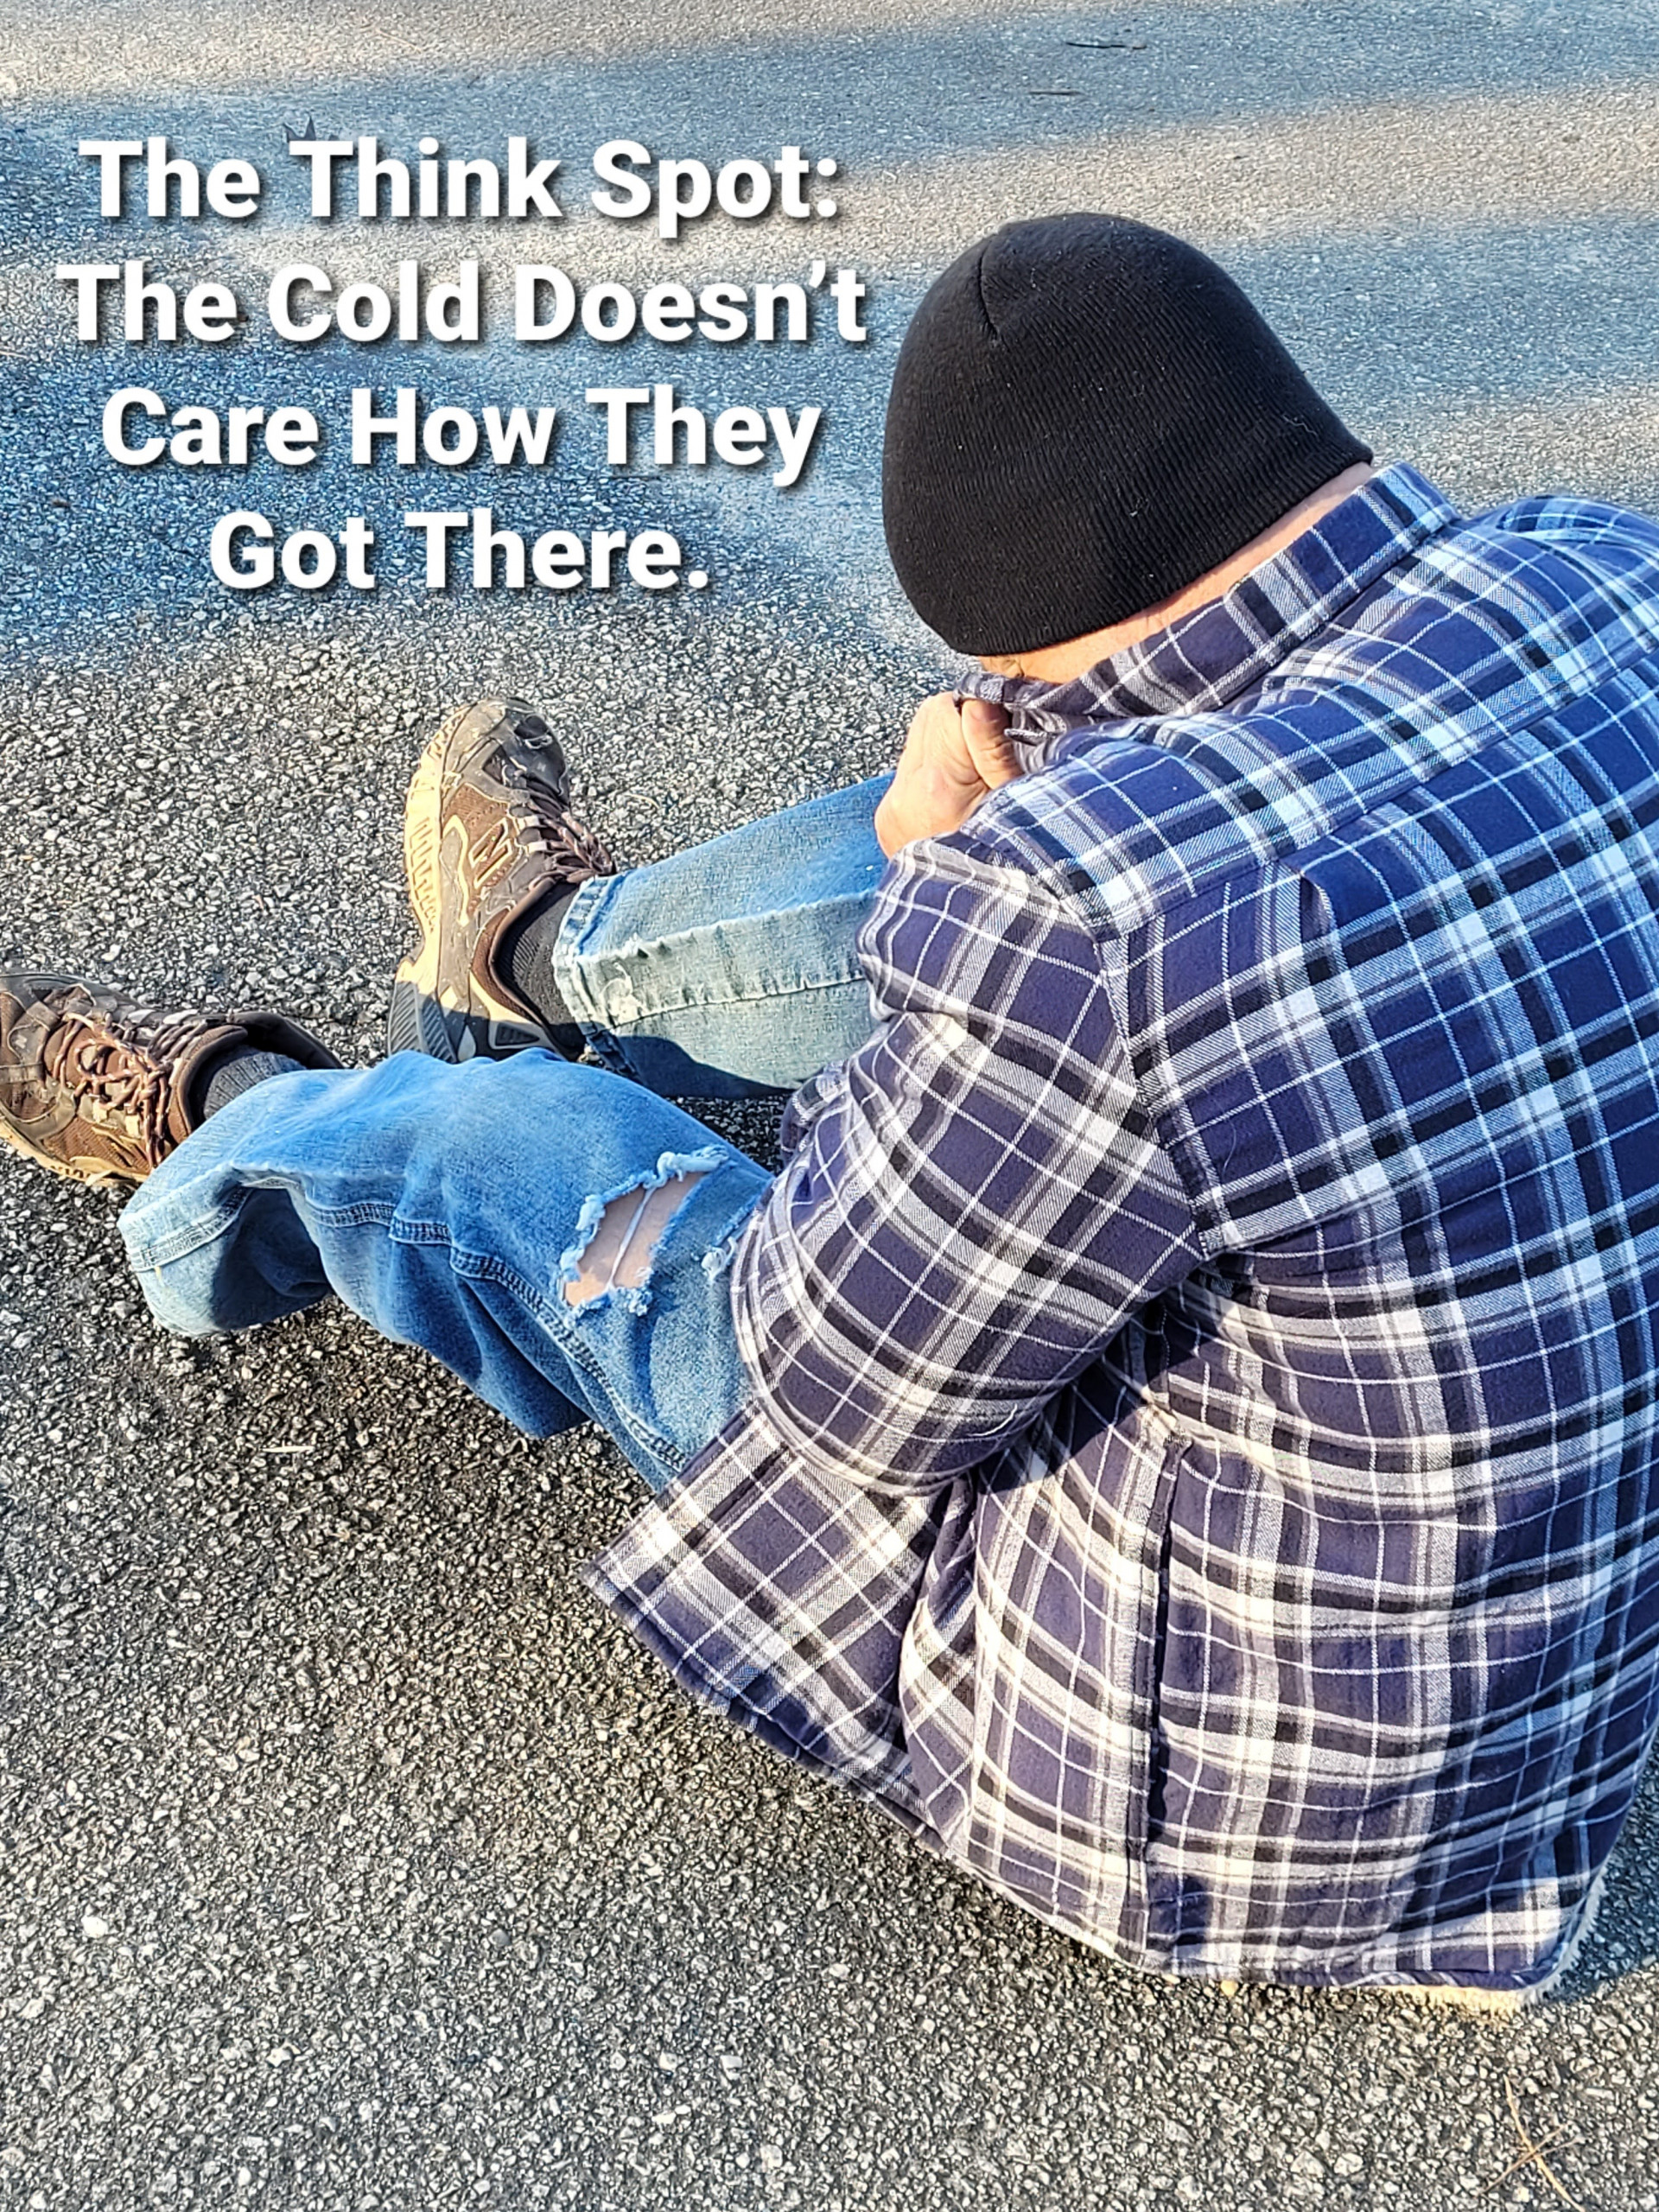 Pastor Bo Wagner as a man cold and homeless